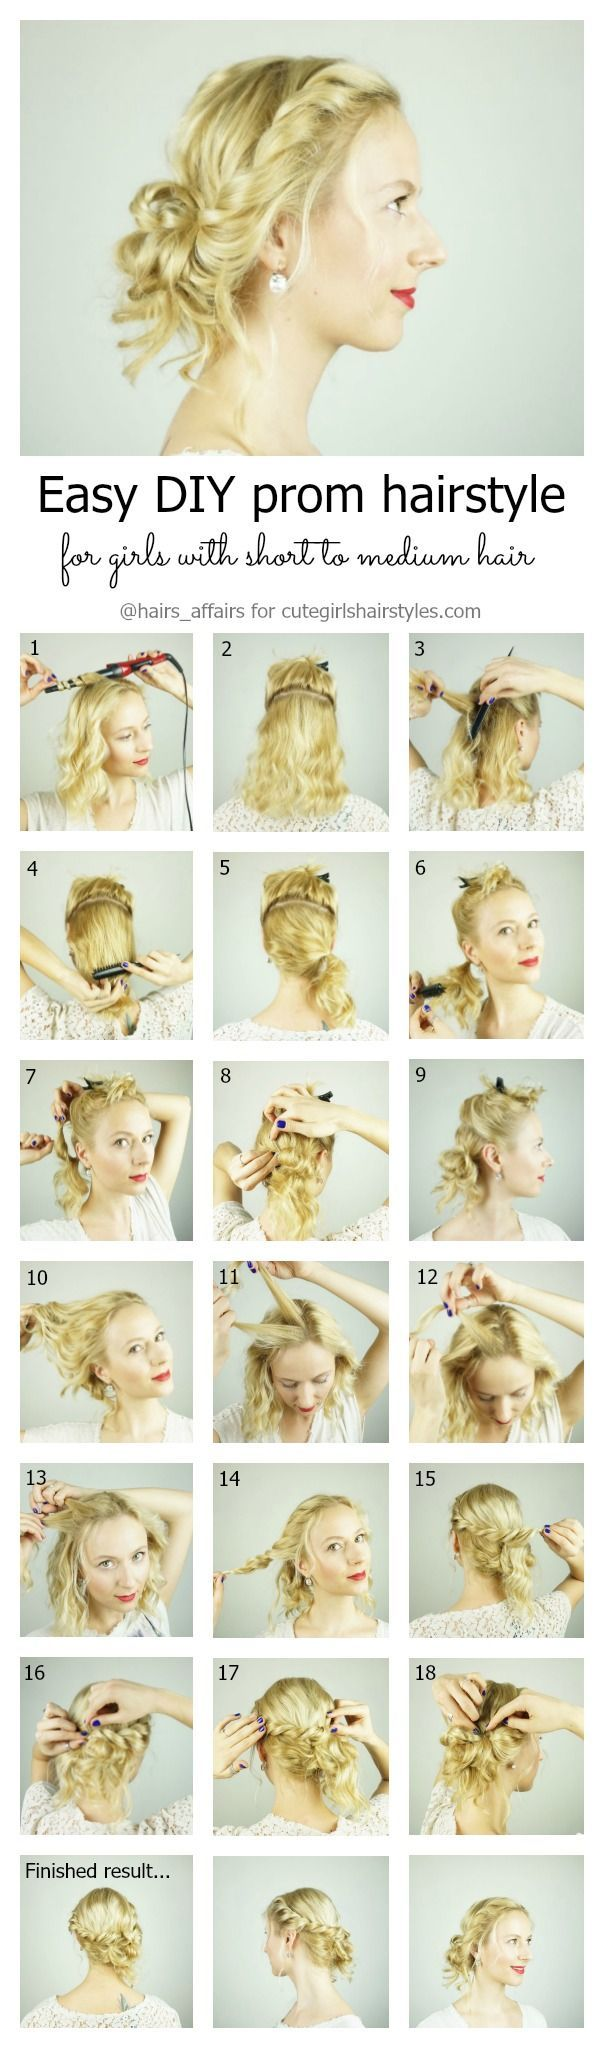 Easy diy prom hairstyle braids pinterest prom hairstyles